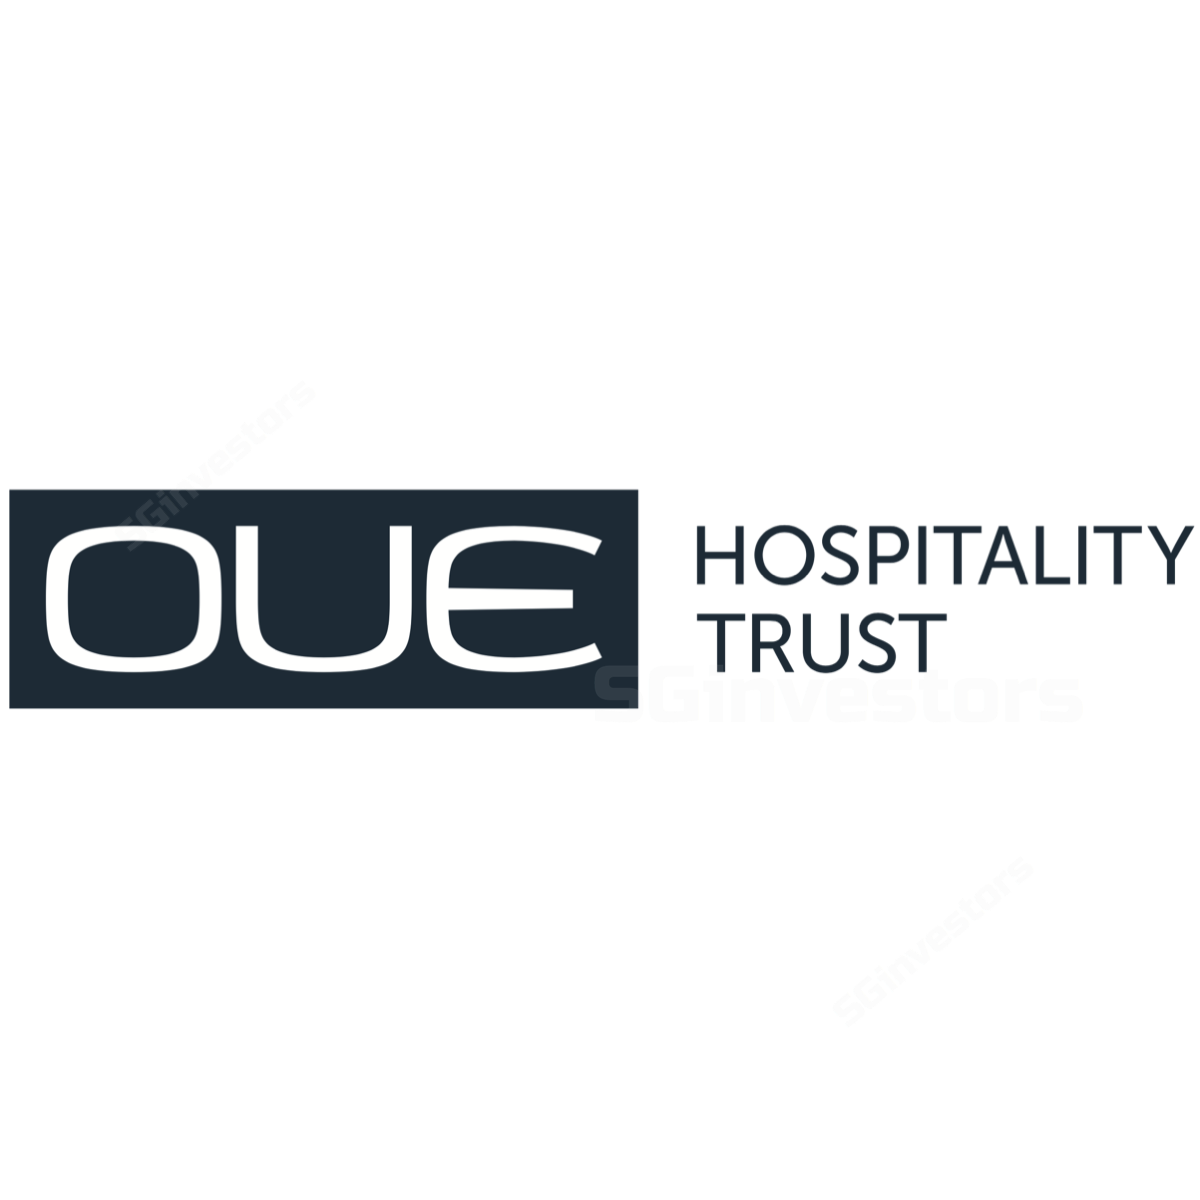 OUE Hospitality Trust - RHB Invest 2018-01-03: Early Refinancing Provides Another Boost